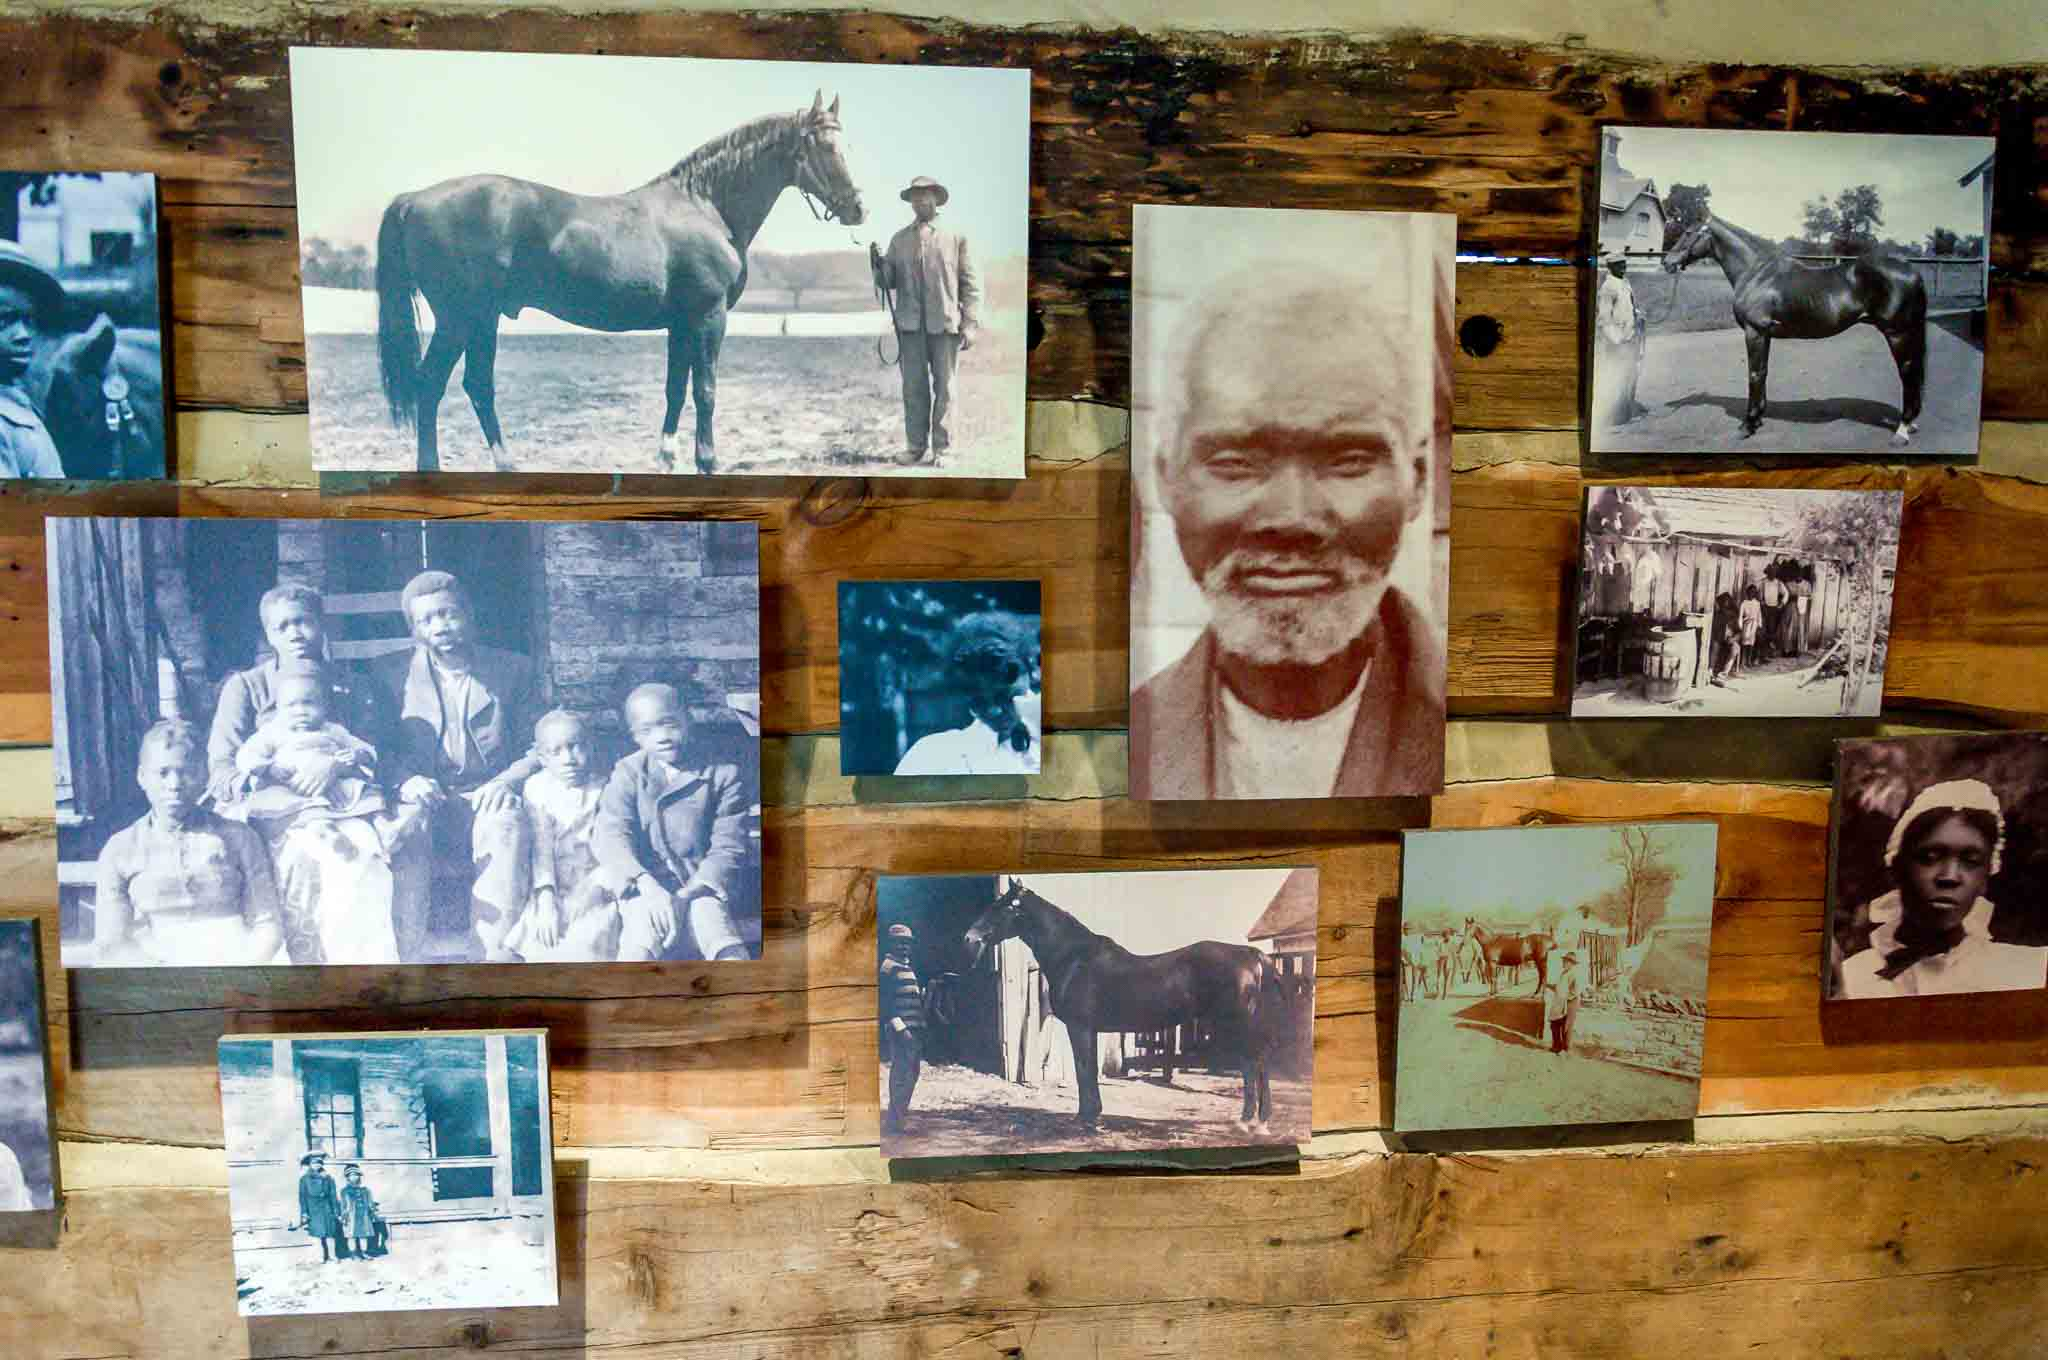 Photos of some of the slaves who lived and worked on the plantation